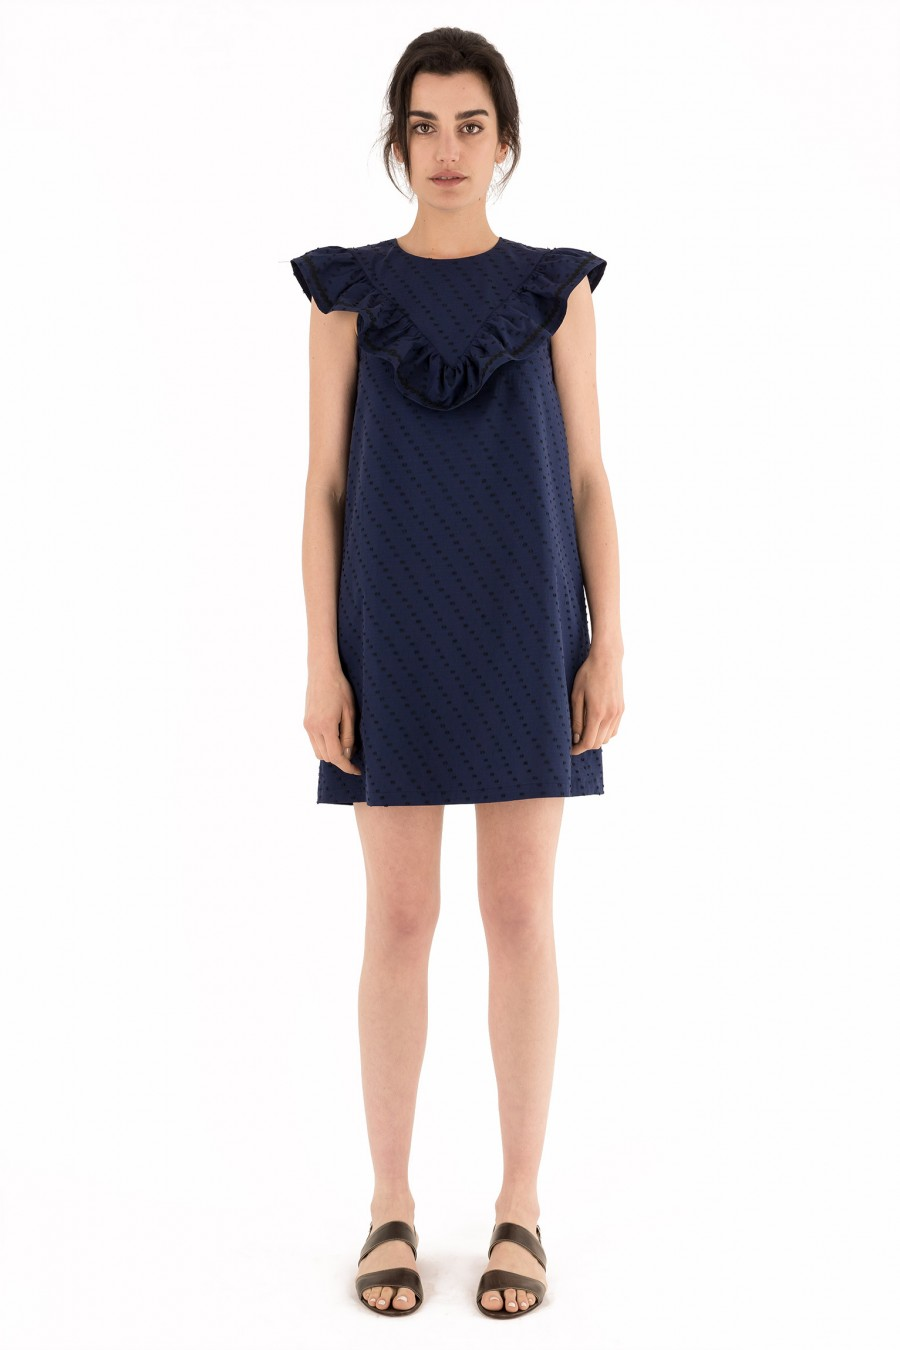 Blue a-line dress with ruffles